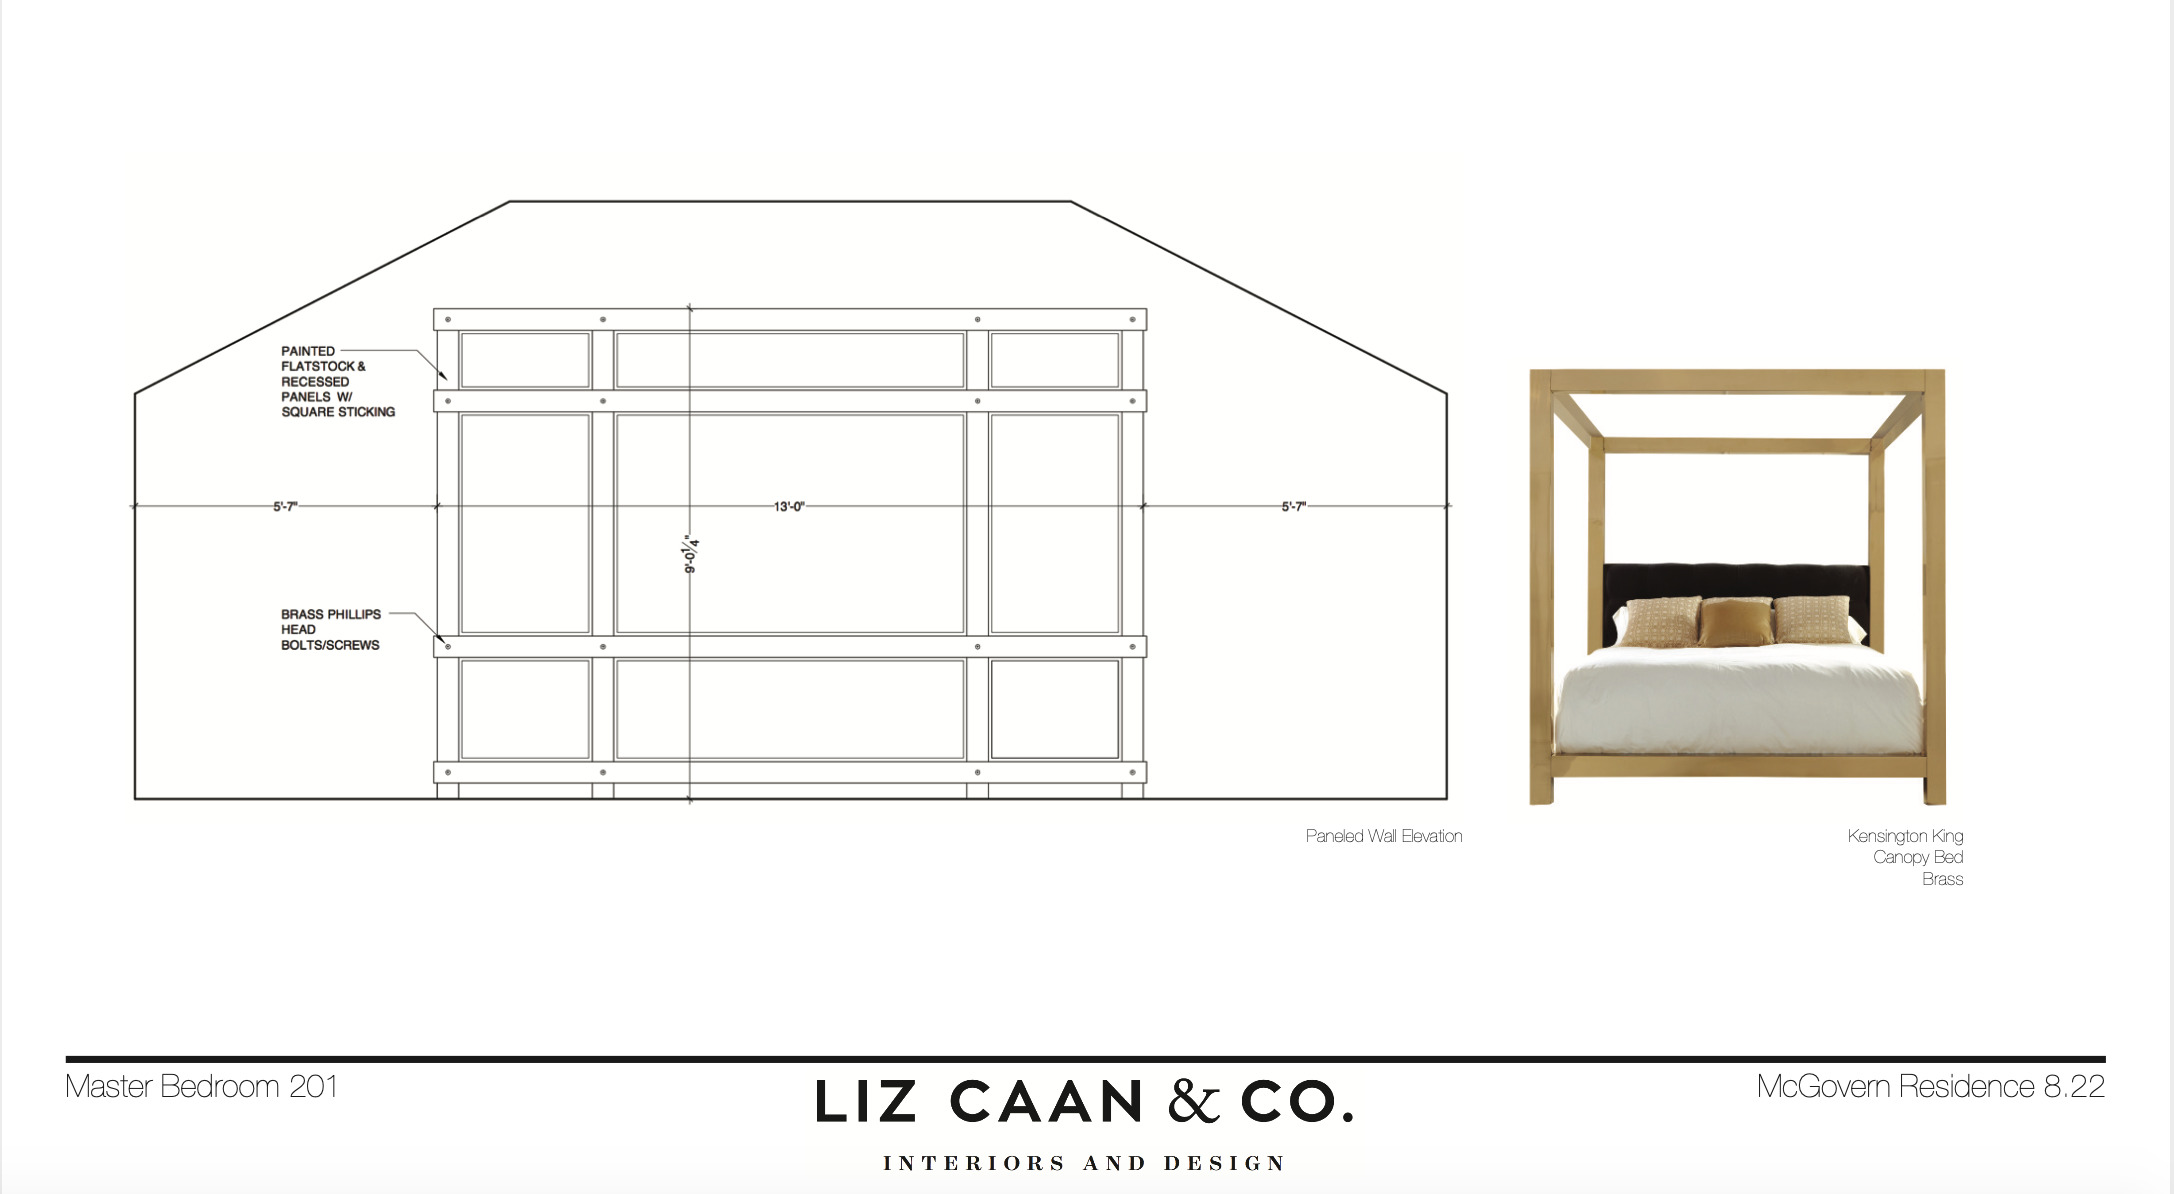 wall-paneling-designed-to-line-up-with-bed-frame-by-liz-caan-interior-design-COUNTRY-Renovation-and-decoration-for-a-young-family